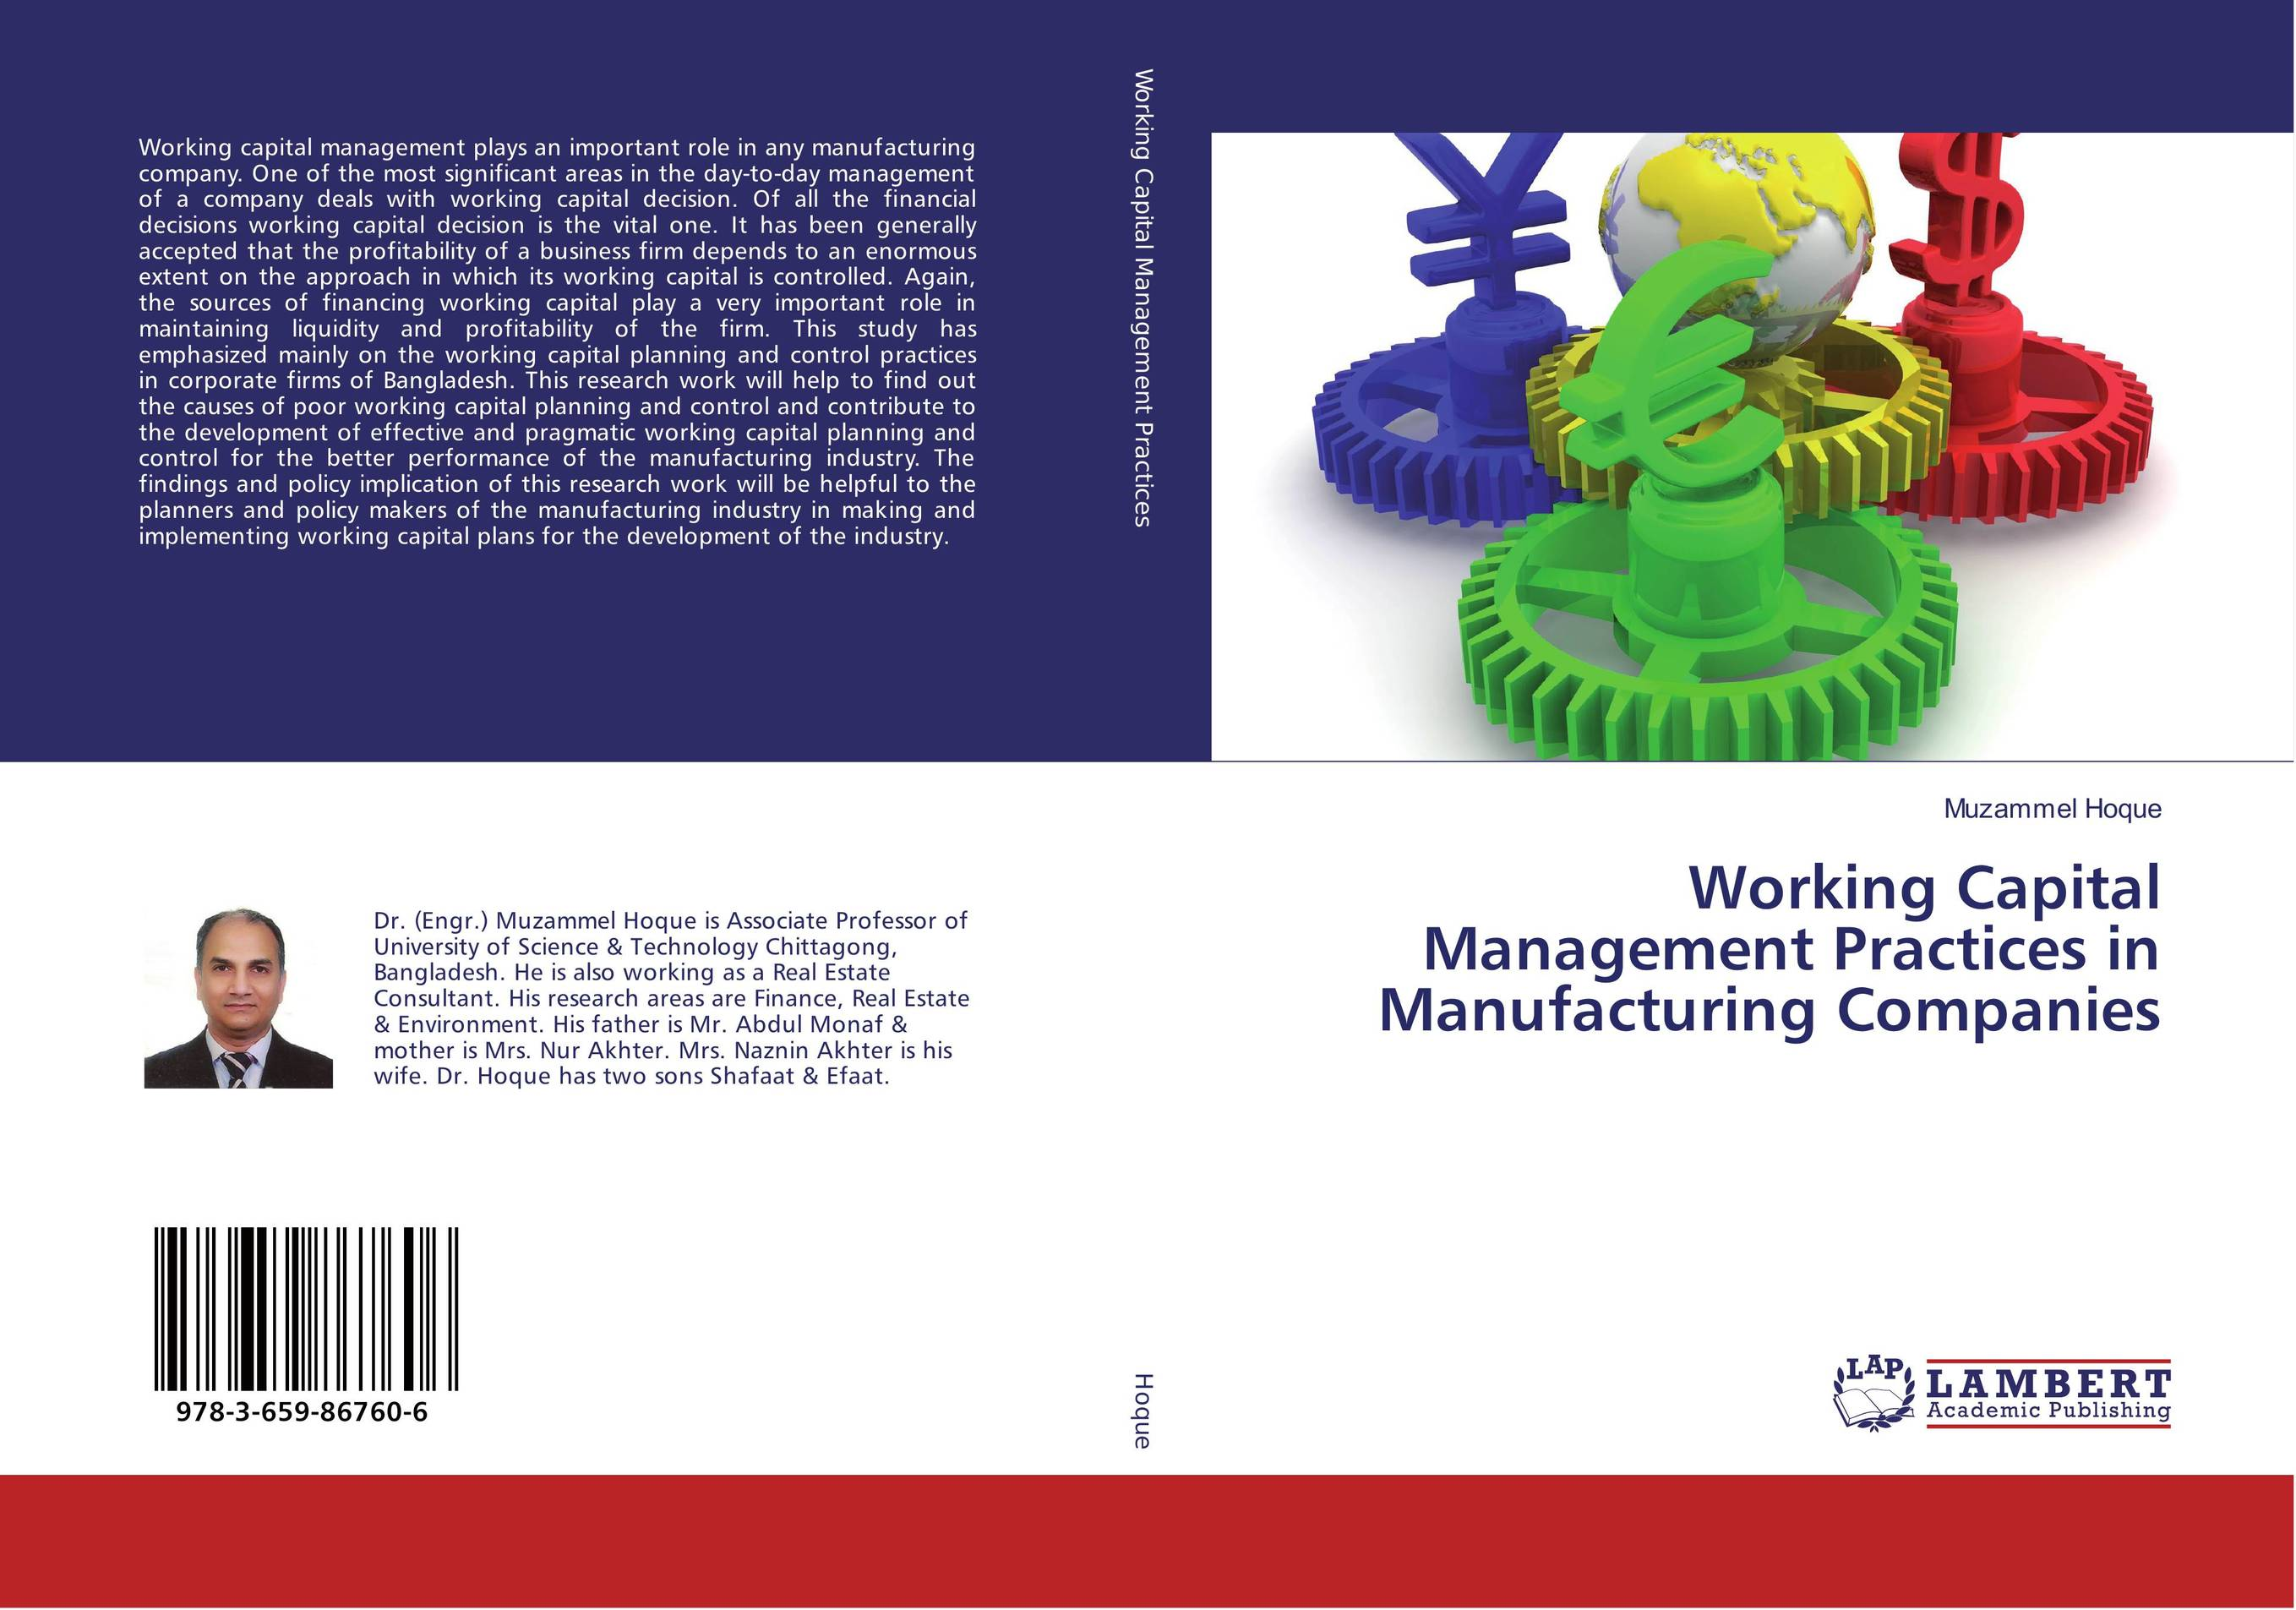 Working Capital Management Practices in Manufacturing Companies papson stephen landscapes of capital